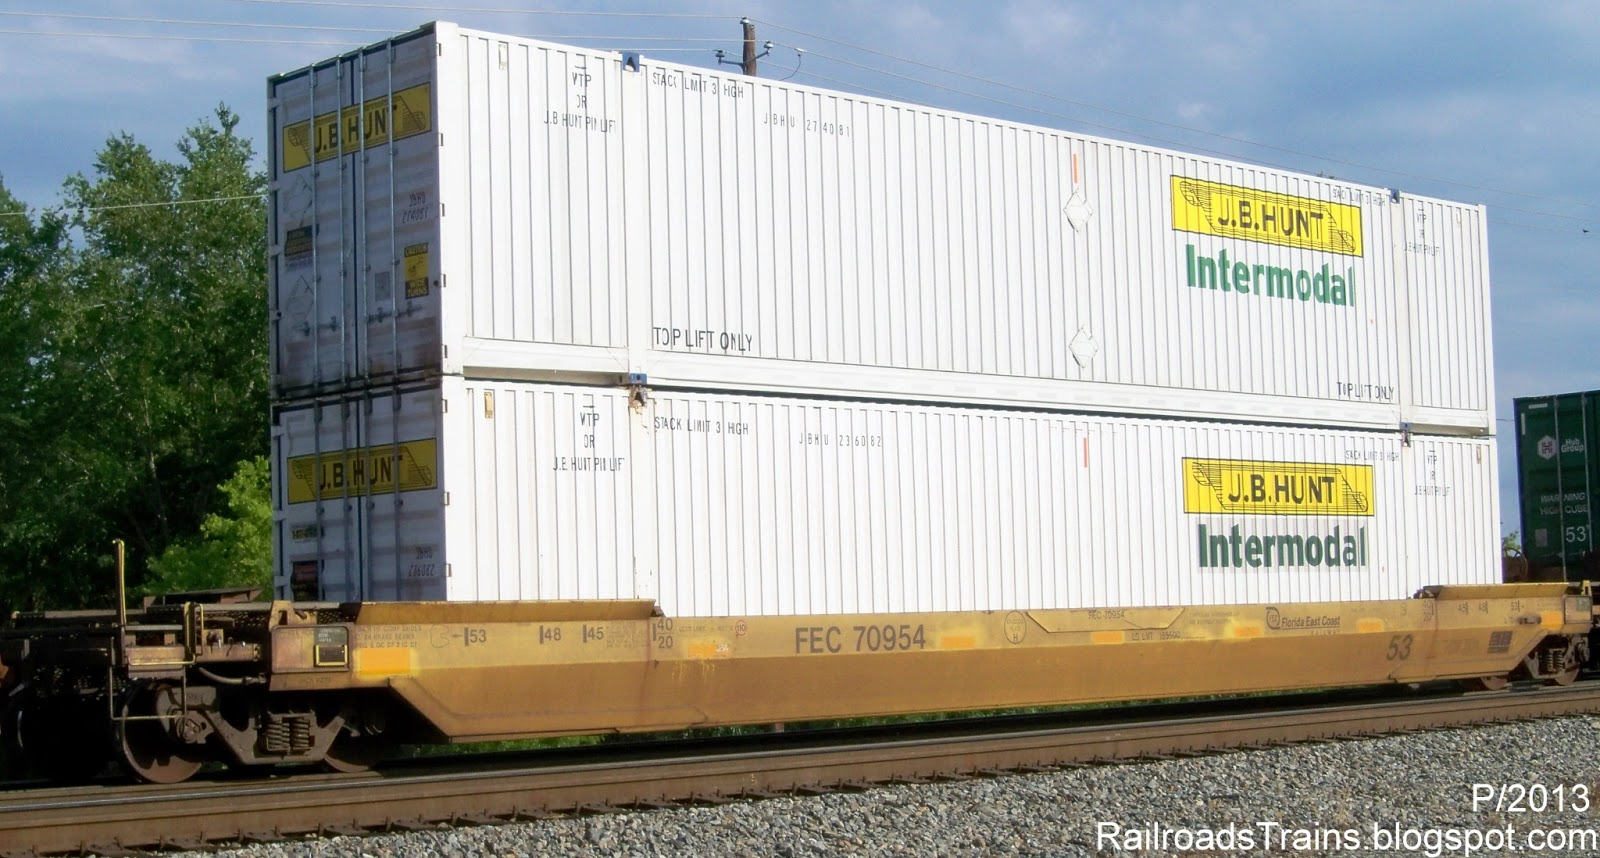 Railroad Containers Images - Reverse Search